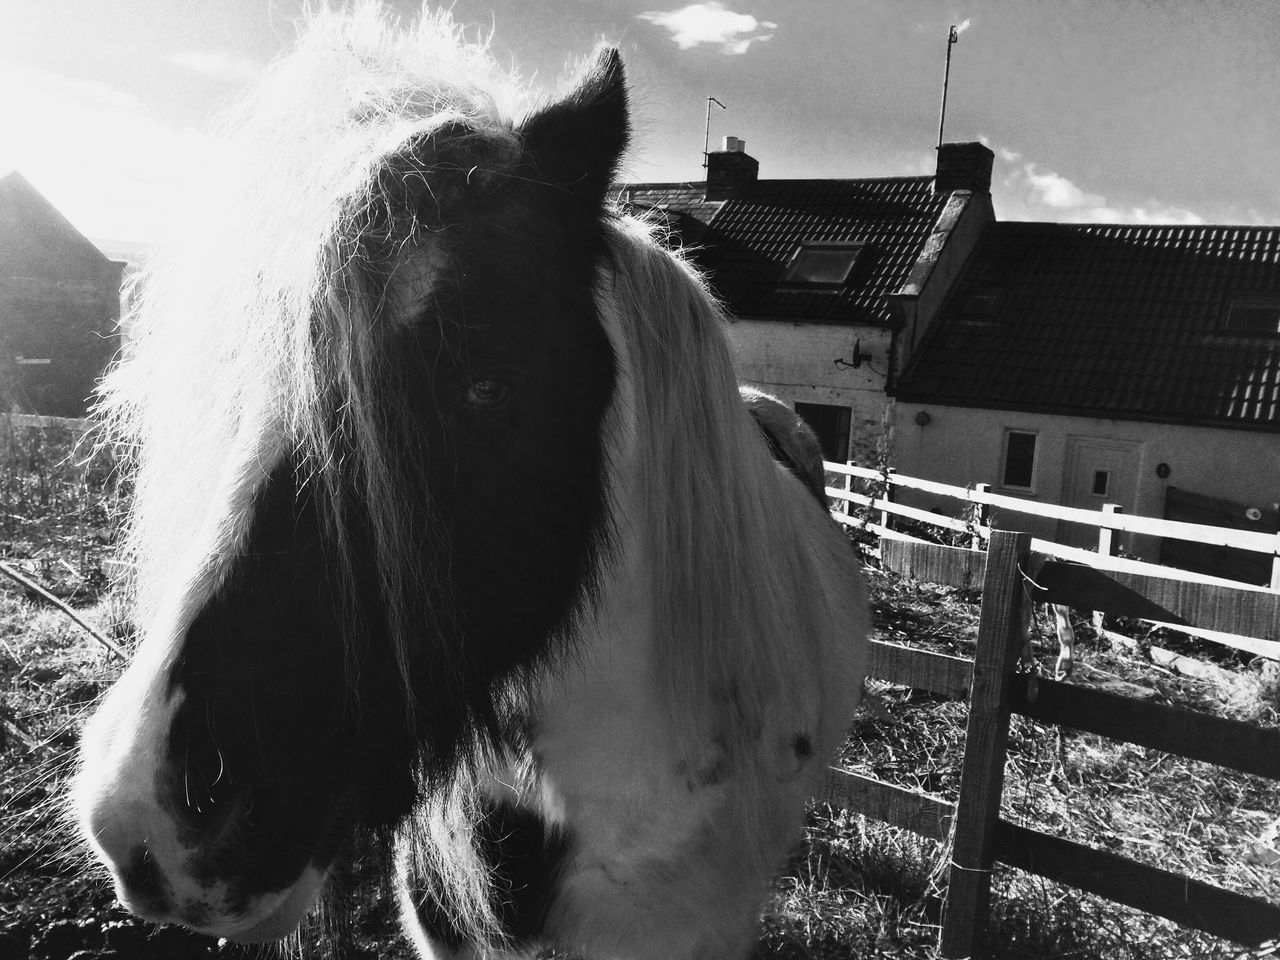 domestic animals, horse, animal themes, mammal, one animal, livestock, animal head, day, outdoors, standing, no people, pets, sky, close-up, nature